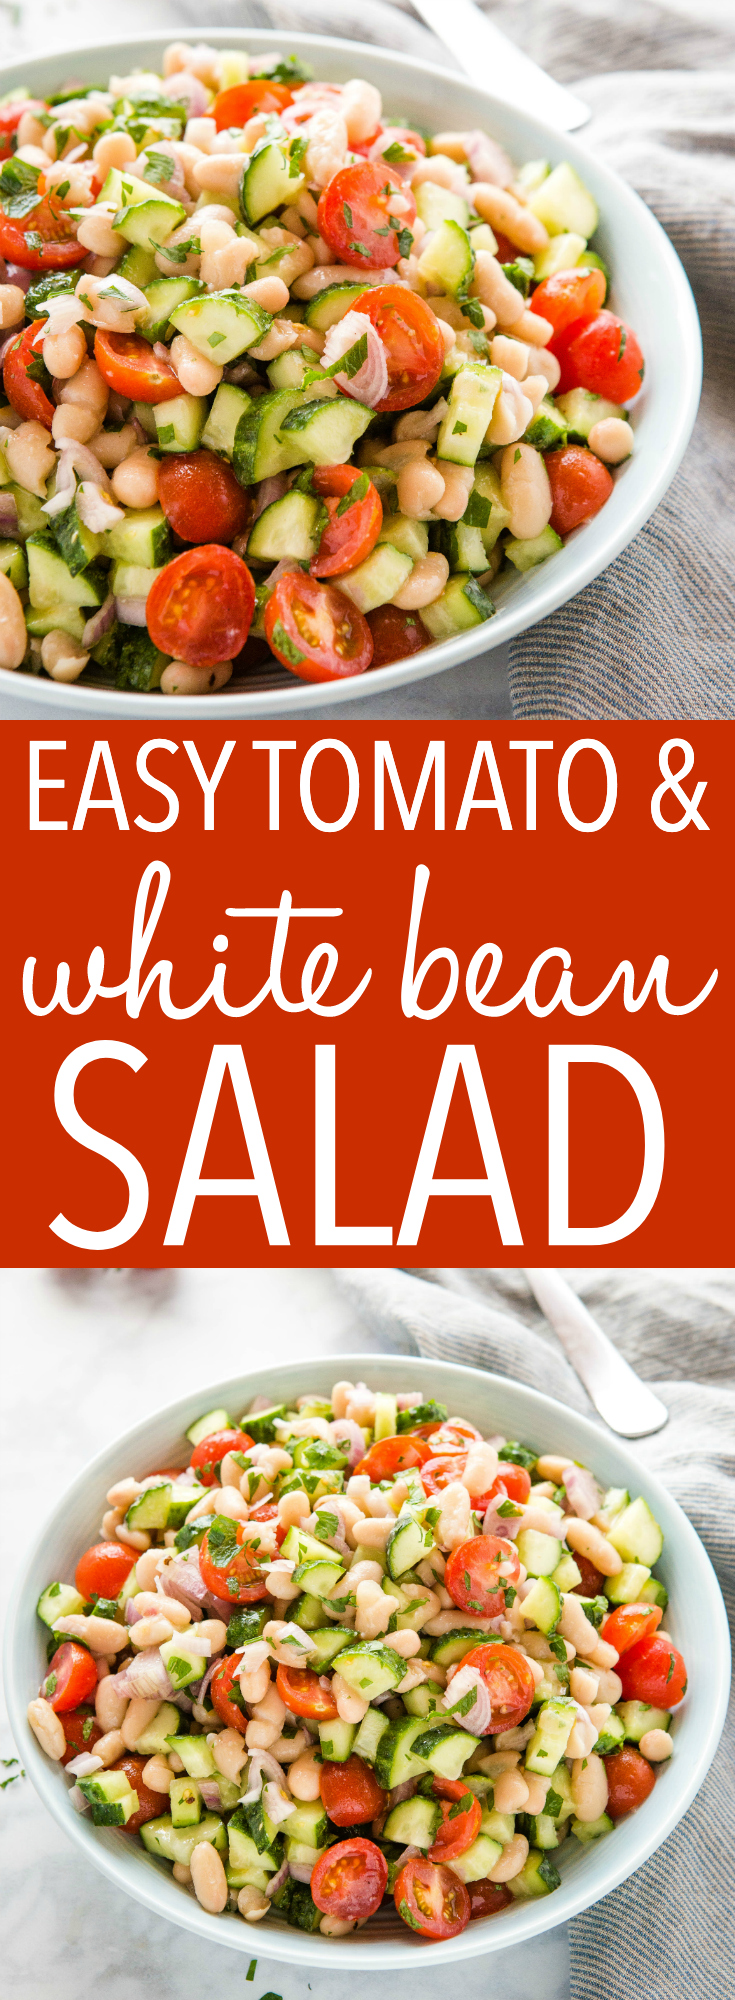 This White Bean Salad with Tomatoes is the perfect fresh salad that's packed with veggies and protein! Healthy and vegetarian! Recipe from thebusybaker.ca! #salad #protein #healthyeating #whitebeans #italian #vegetarian #vegan #health #weightloss via @busybakerblog